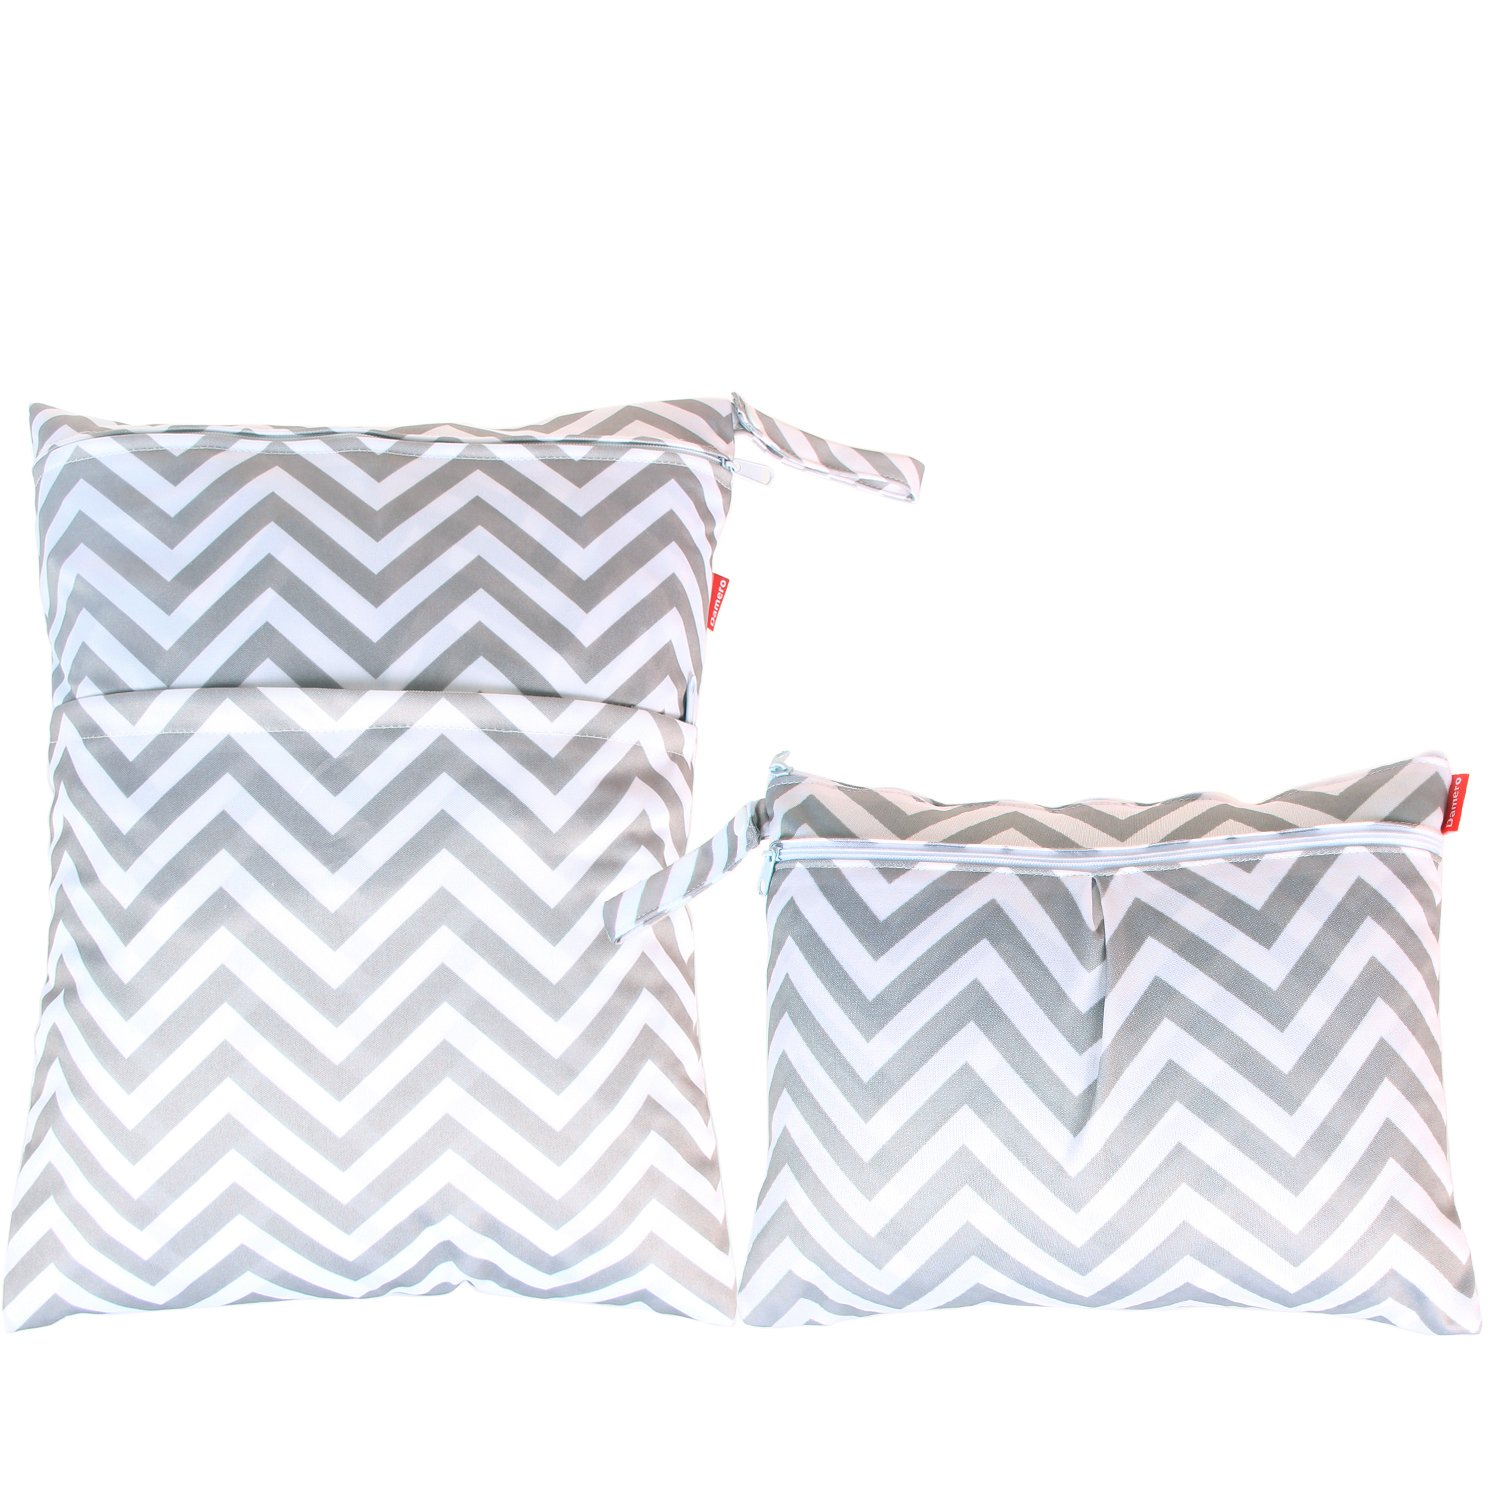 Damero 2pcs Pack Travel Baby Wet and Dry Cloth Diaper Organizer Bag, Blue Chevron